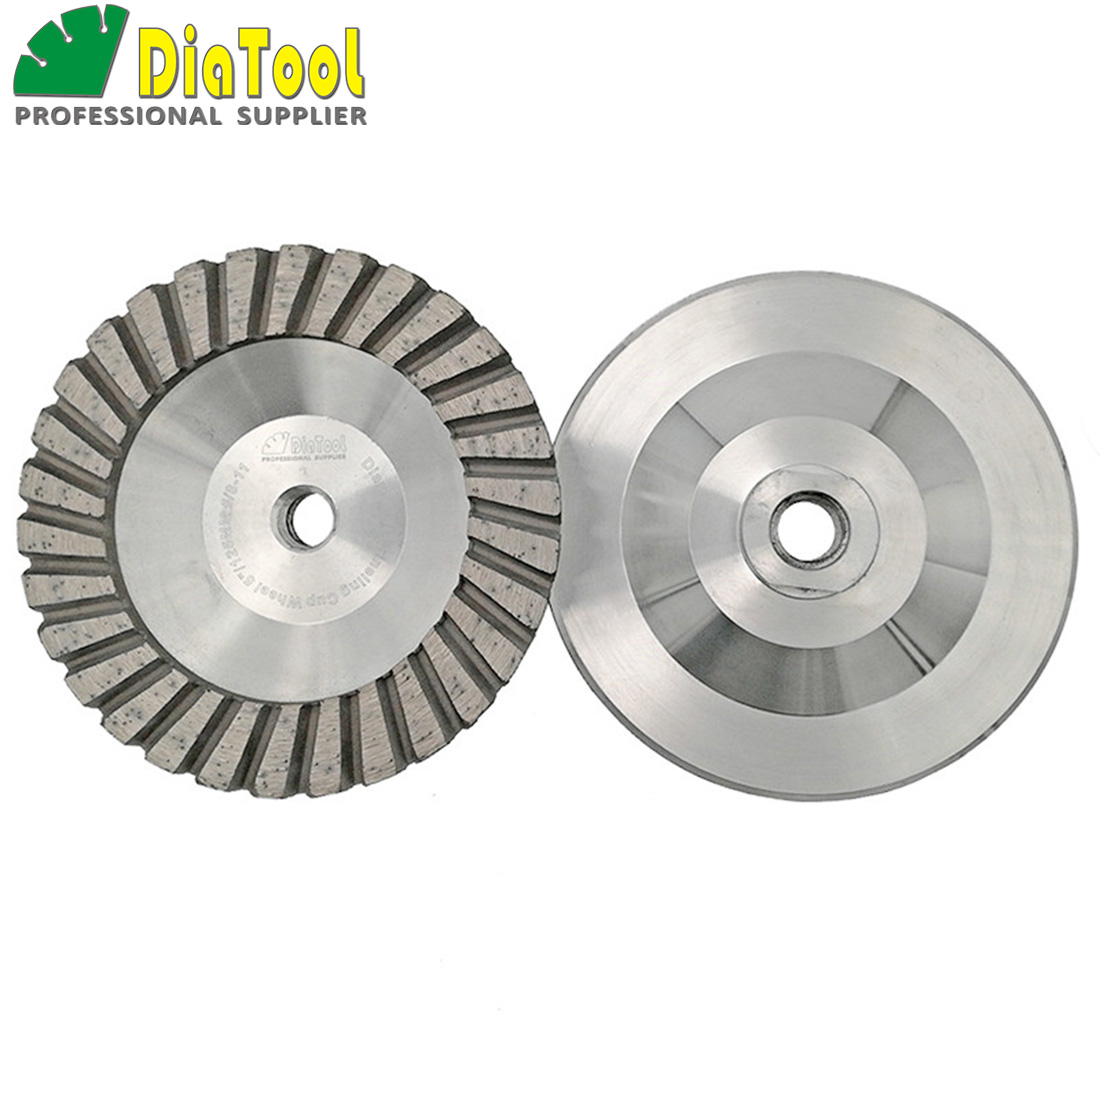 DIATOOL 2PK Dia 125mm/5inch Aluminum Based Diamond Grinding Cup Wheel 5/8-11 thread Grit #30 Grinding Wheel For Granite Concrete [m14 thread] 5 ncctec diamond aluminum matrix sintered grinding disc 125mm stone turbo grinding cup wheel free shipping